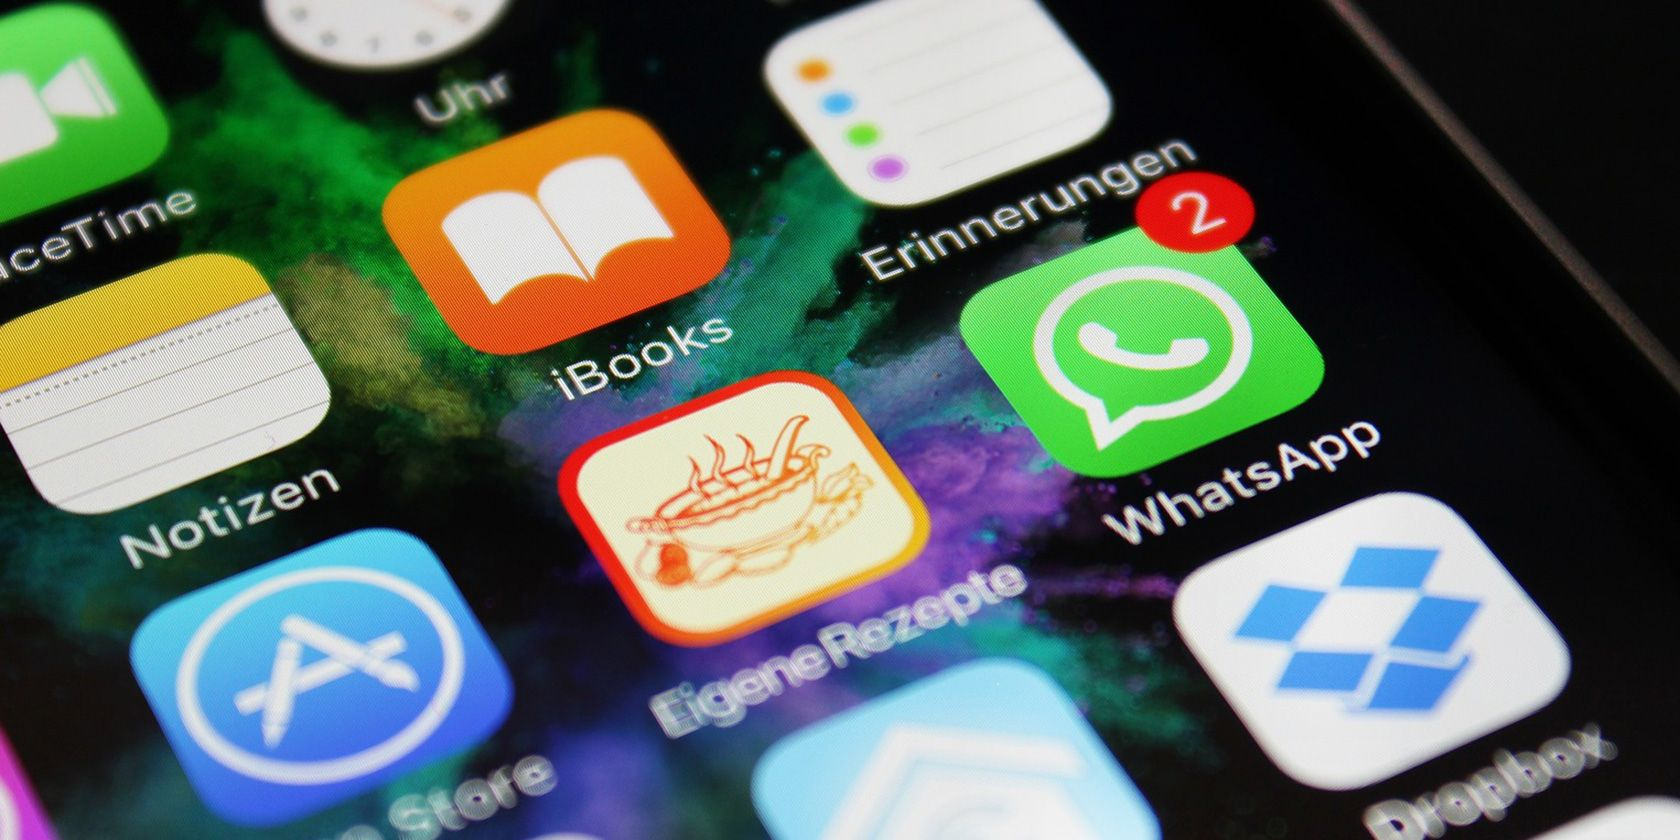 You Will No Longer Be Able to Use WhatsApp on These iPhones